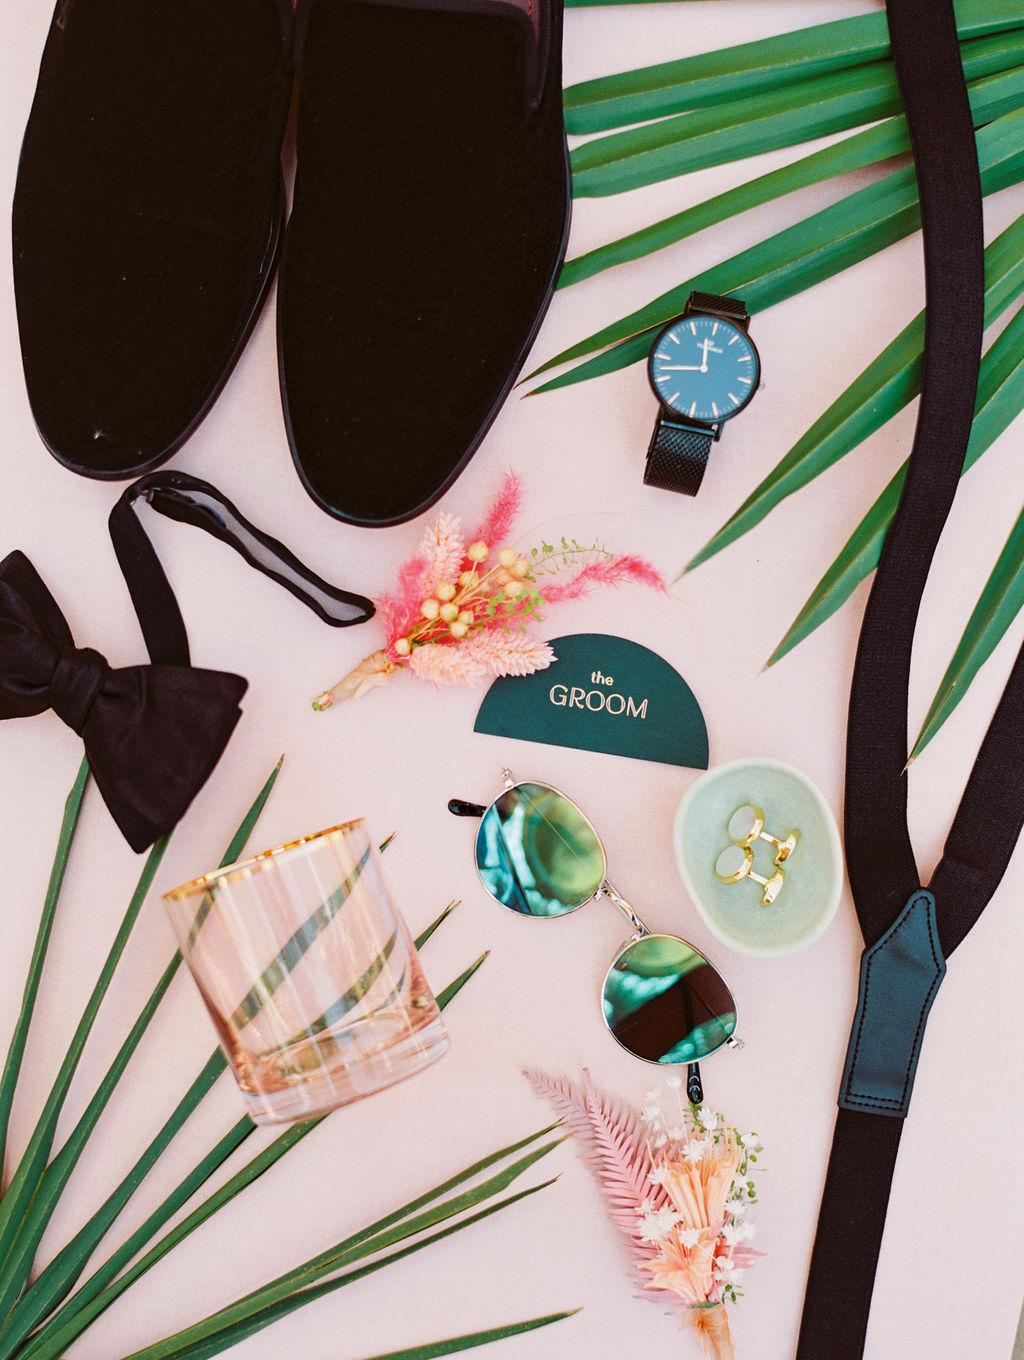 Groom flat lay tropical with black smoking slippers https://shopstyle.it/l/bhmxA